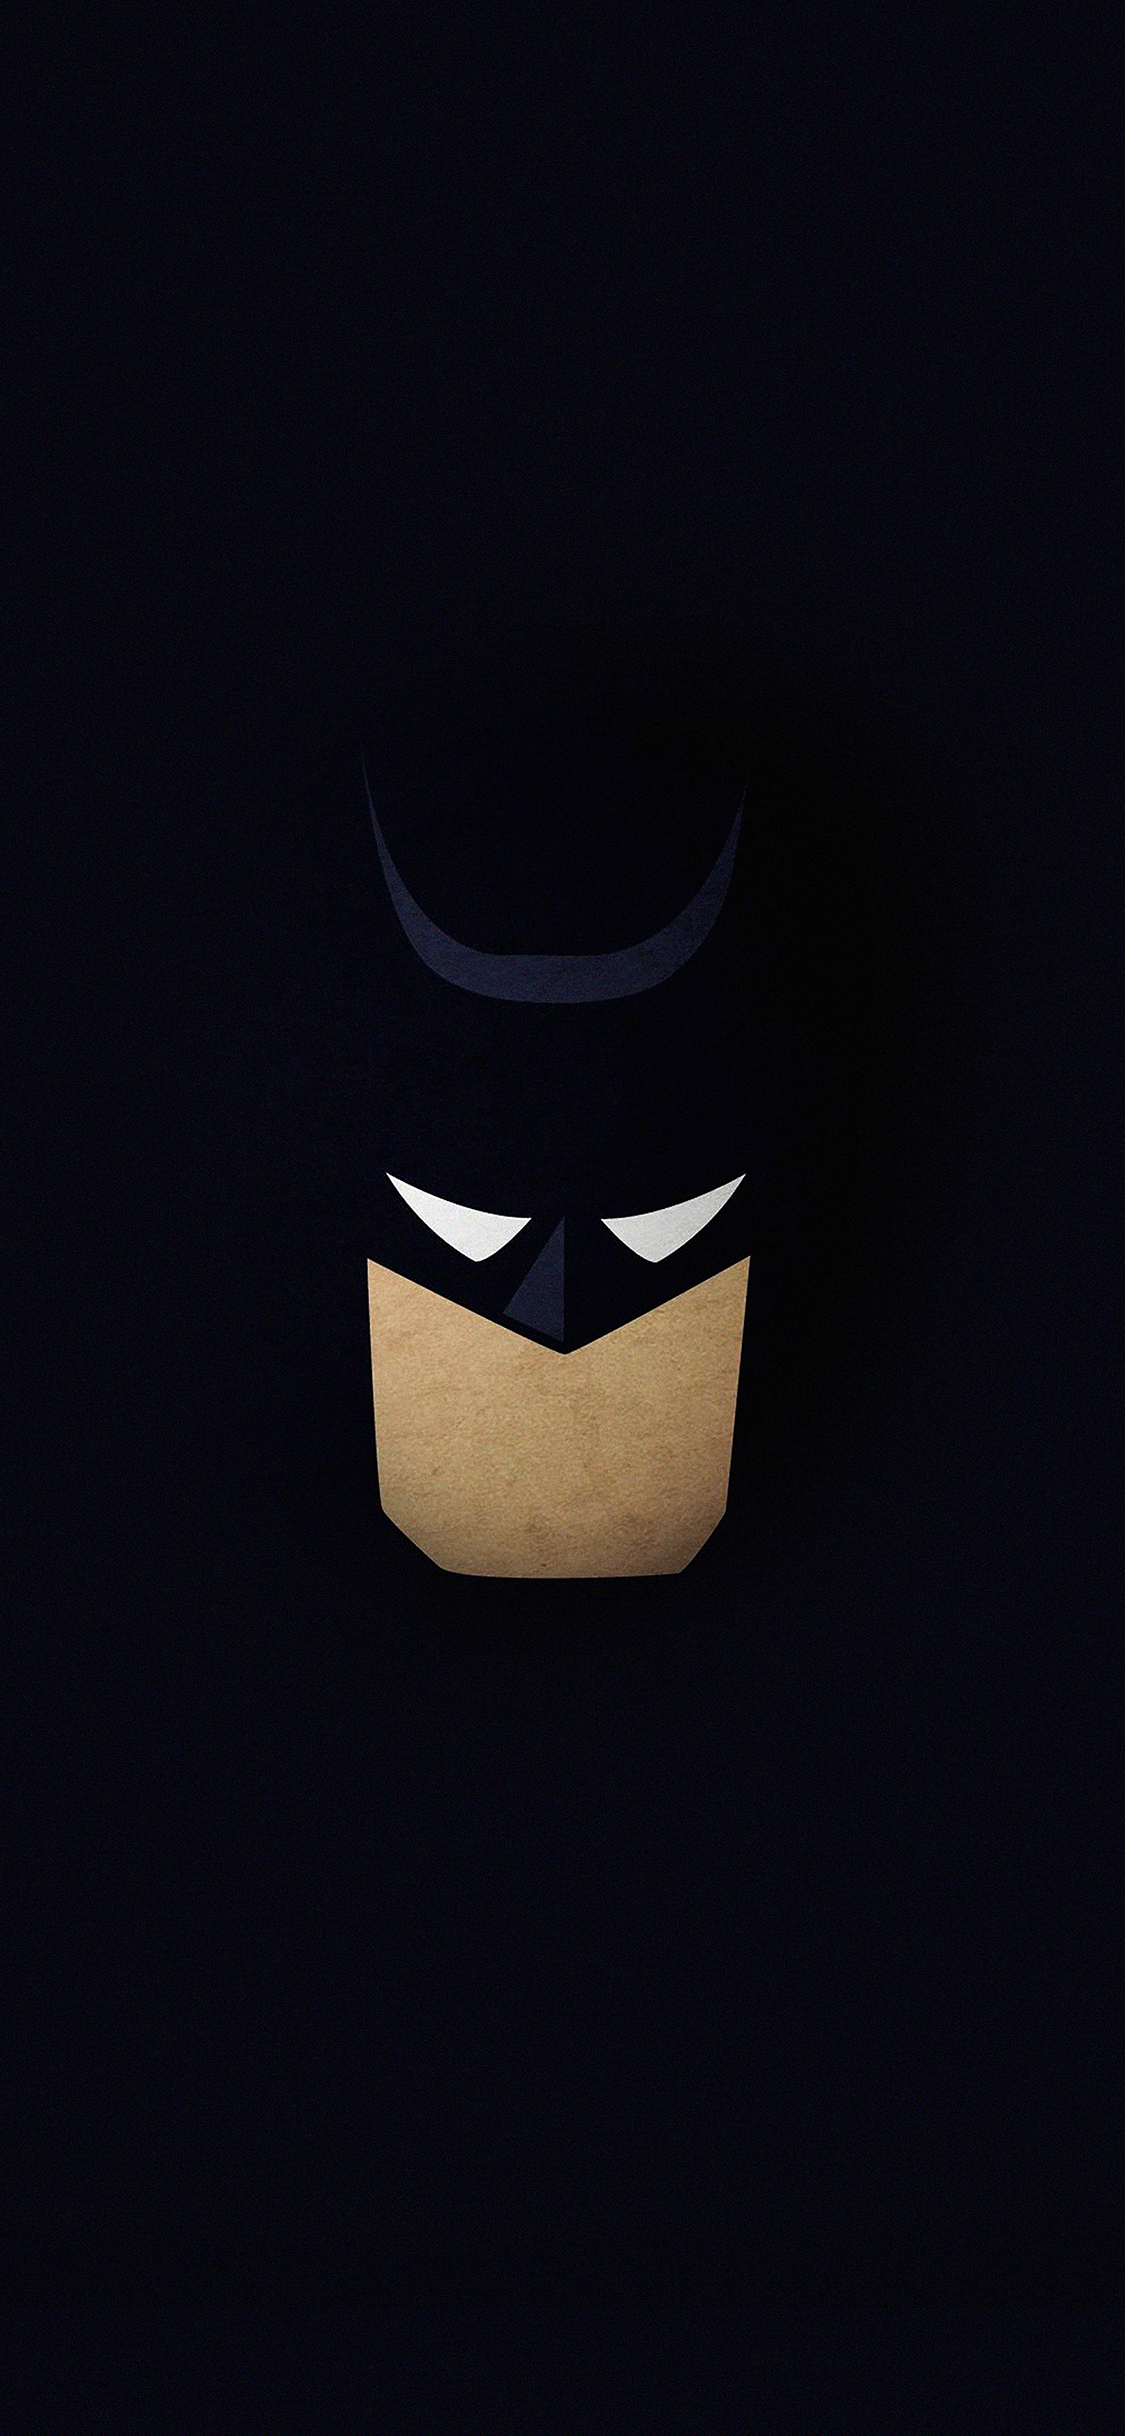 iPhoneXpapers.com-Apple-iPhone-wallpaper-ab54-wallpaper-batman-face-dark-minimal